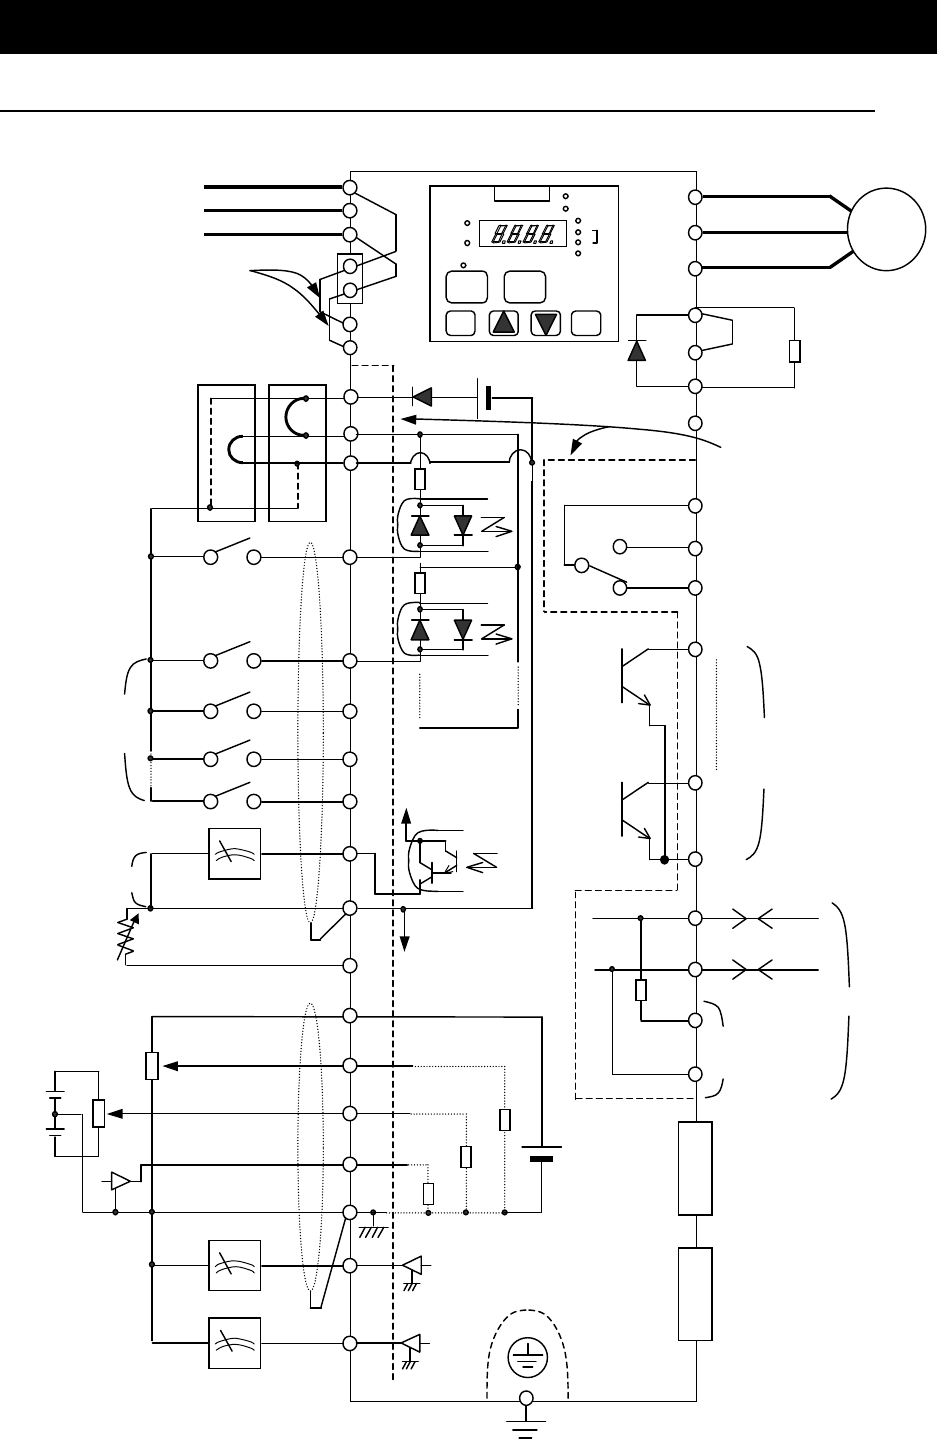 Hitachi Inverter Sj700 2 Users Manual Front Contents Ver3 D010 Led Driver Wiring Diagram Chapter Installation And